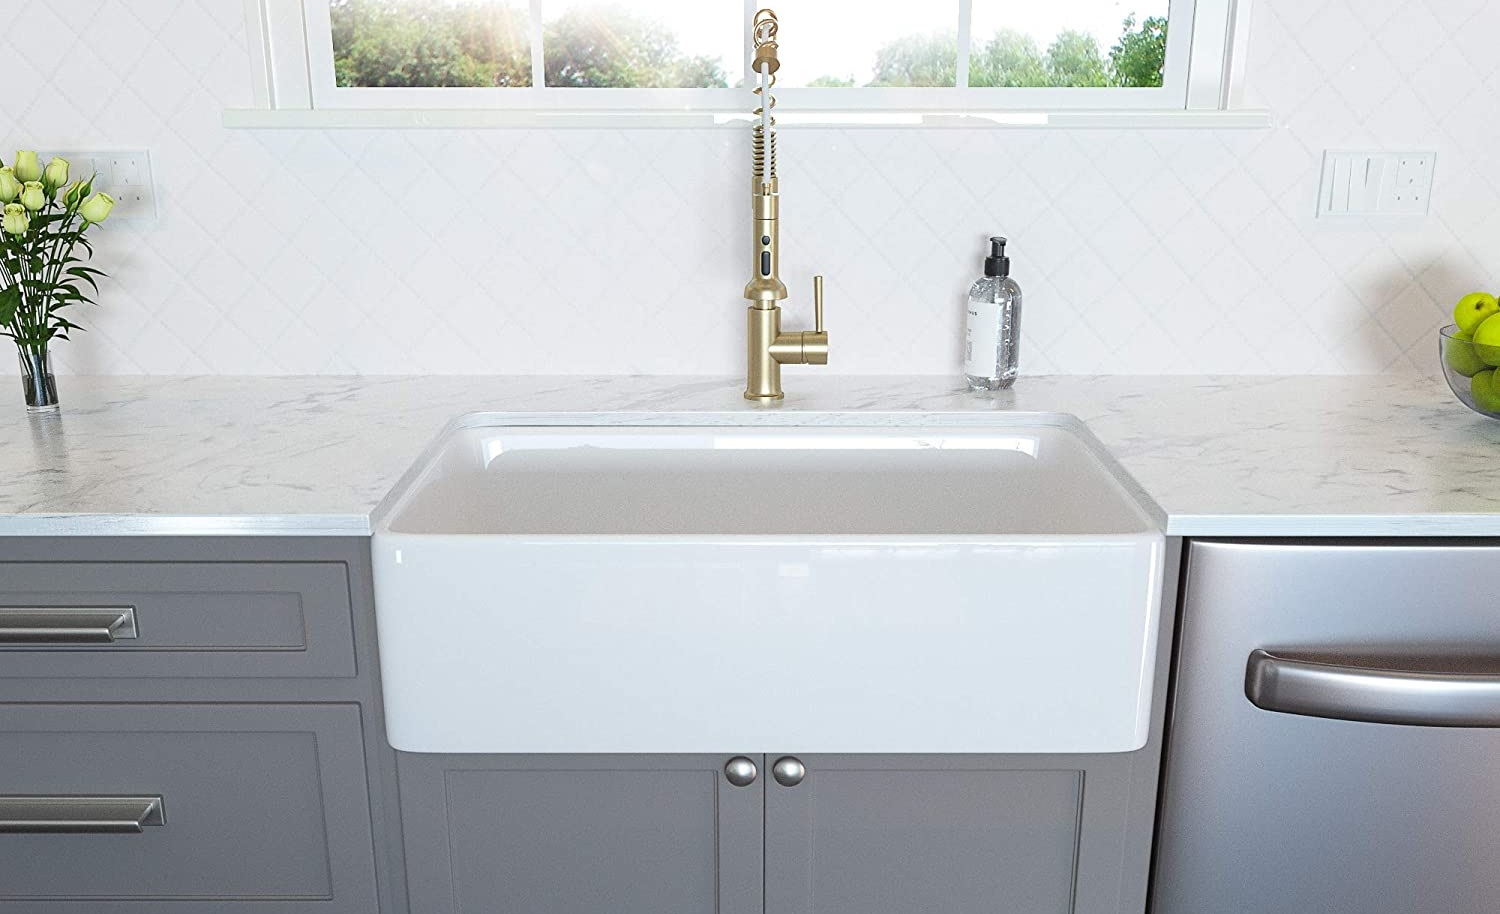 Lordear Farmhouse Sink